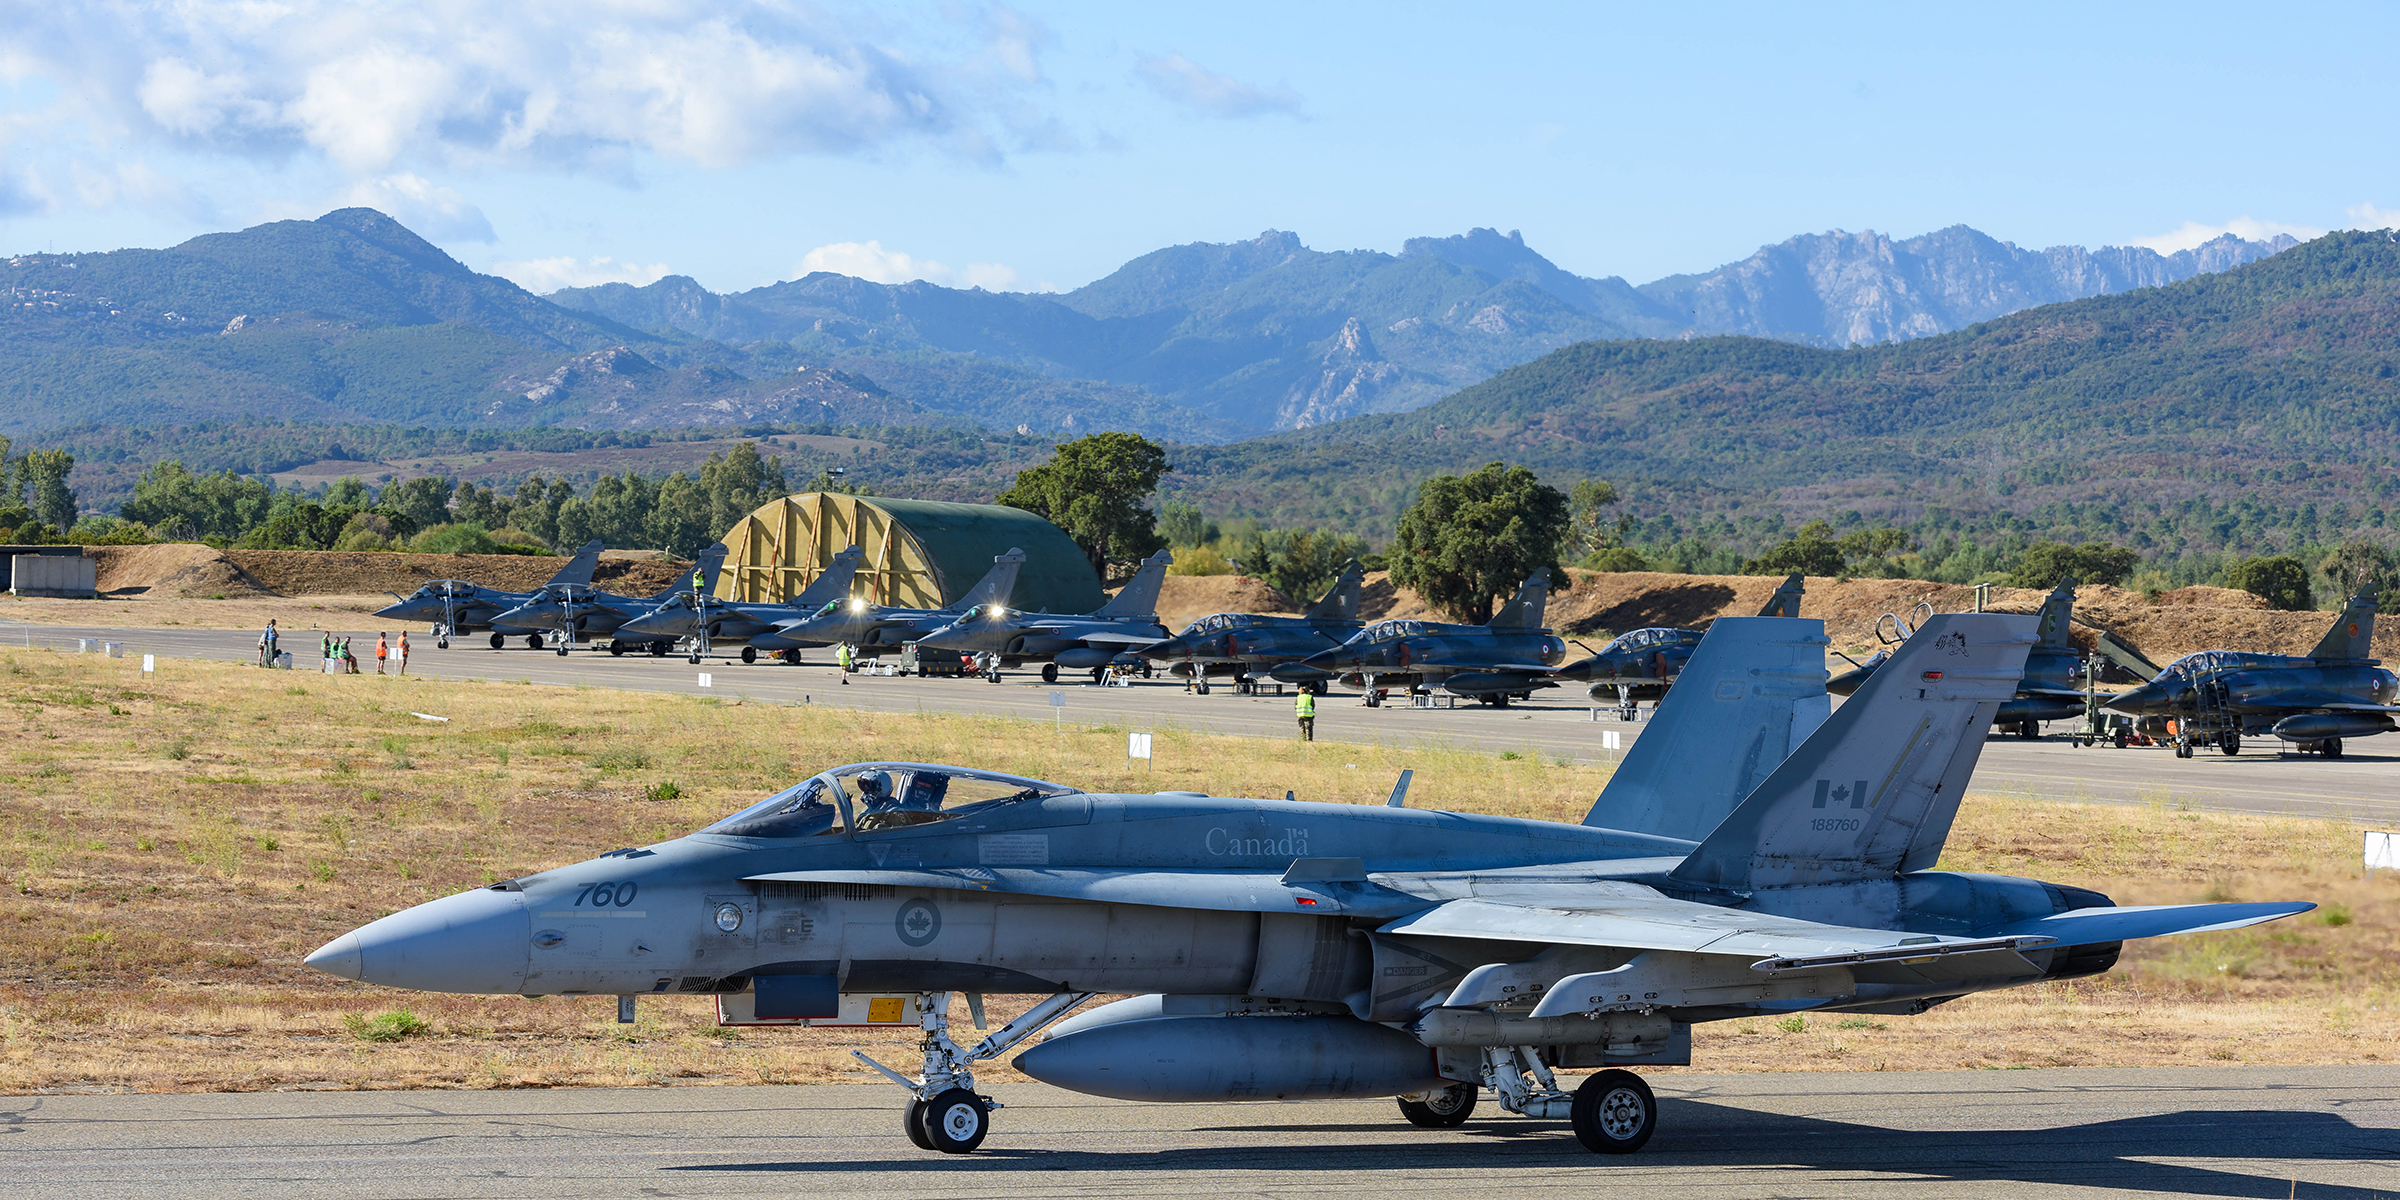 A Canadian CF-188 Hornet taxies to the runway on September 19, 2017 during SERPENTEX 2017 in Corsica. This image has been digitally modified for operational security. PHOTO: Master Corporal Louis Brunet, BN53-2017-0002-005